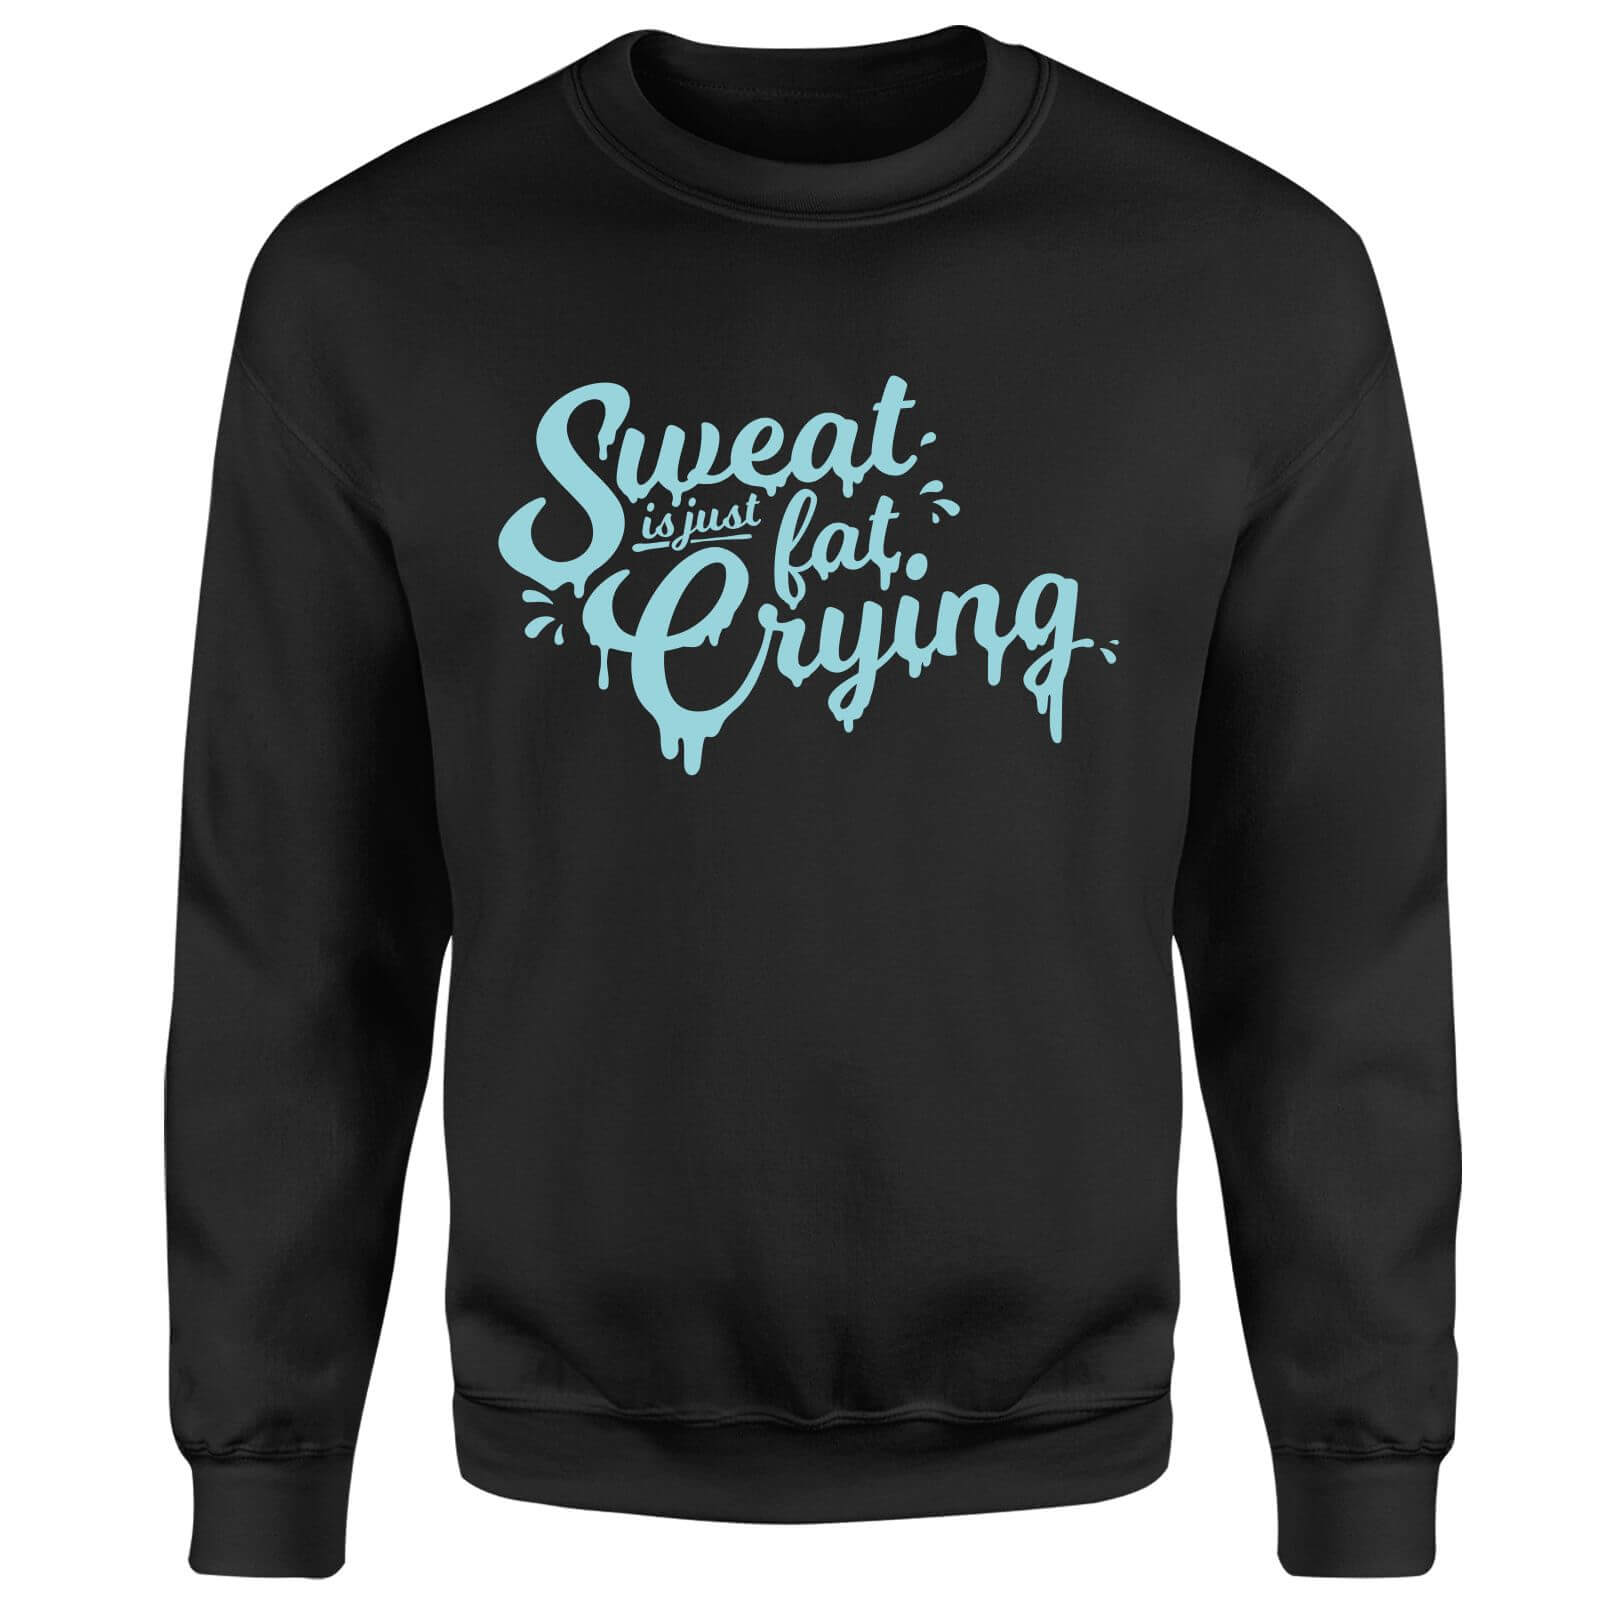 Sweat Is Just Fat Crying Sweatshirt - Black